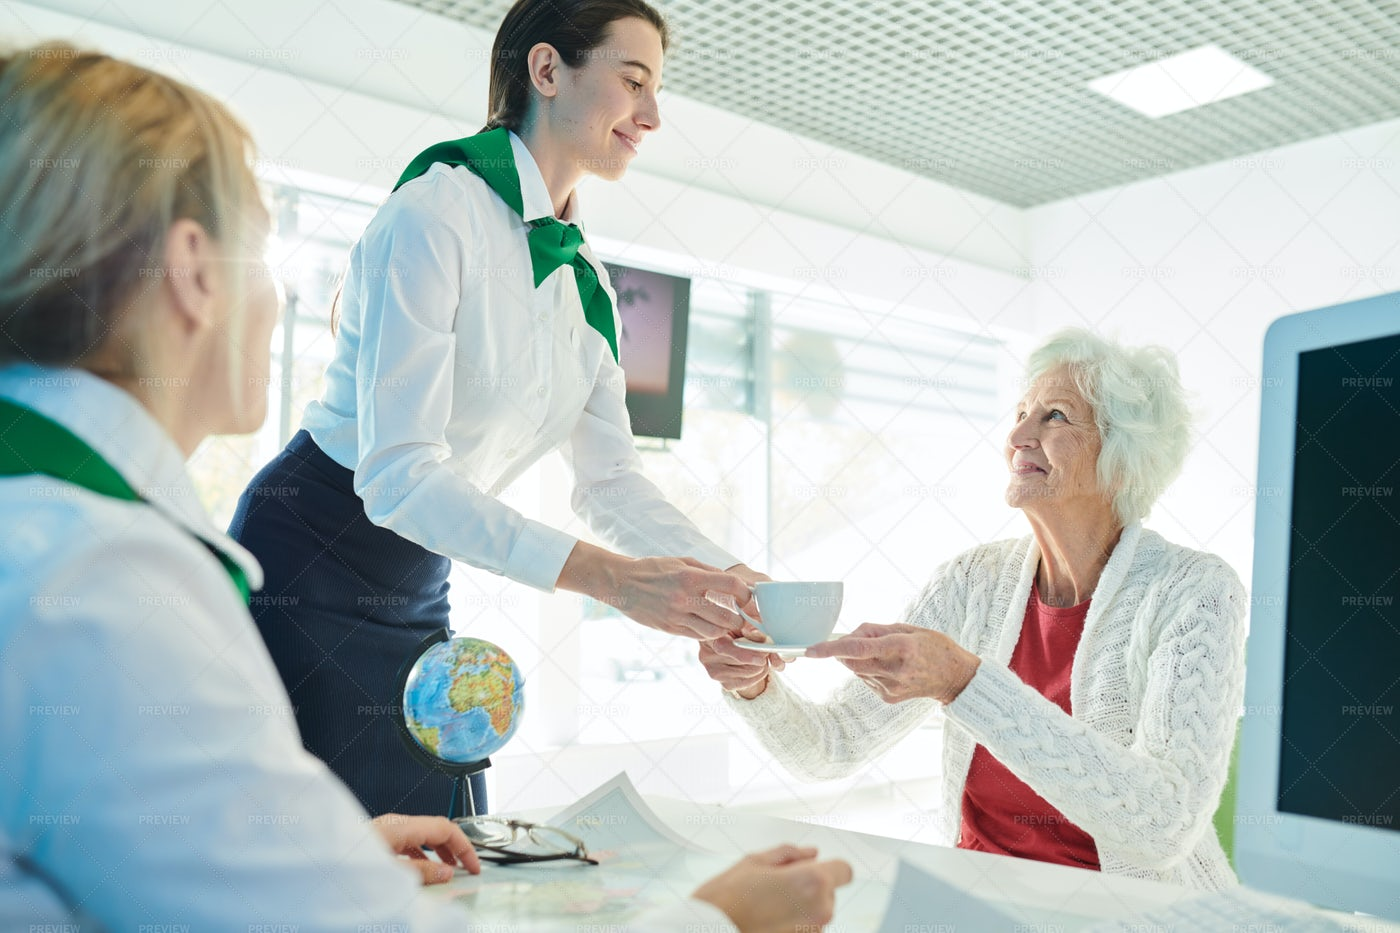 Taking Care Of Client In Travel...: Stock Photos